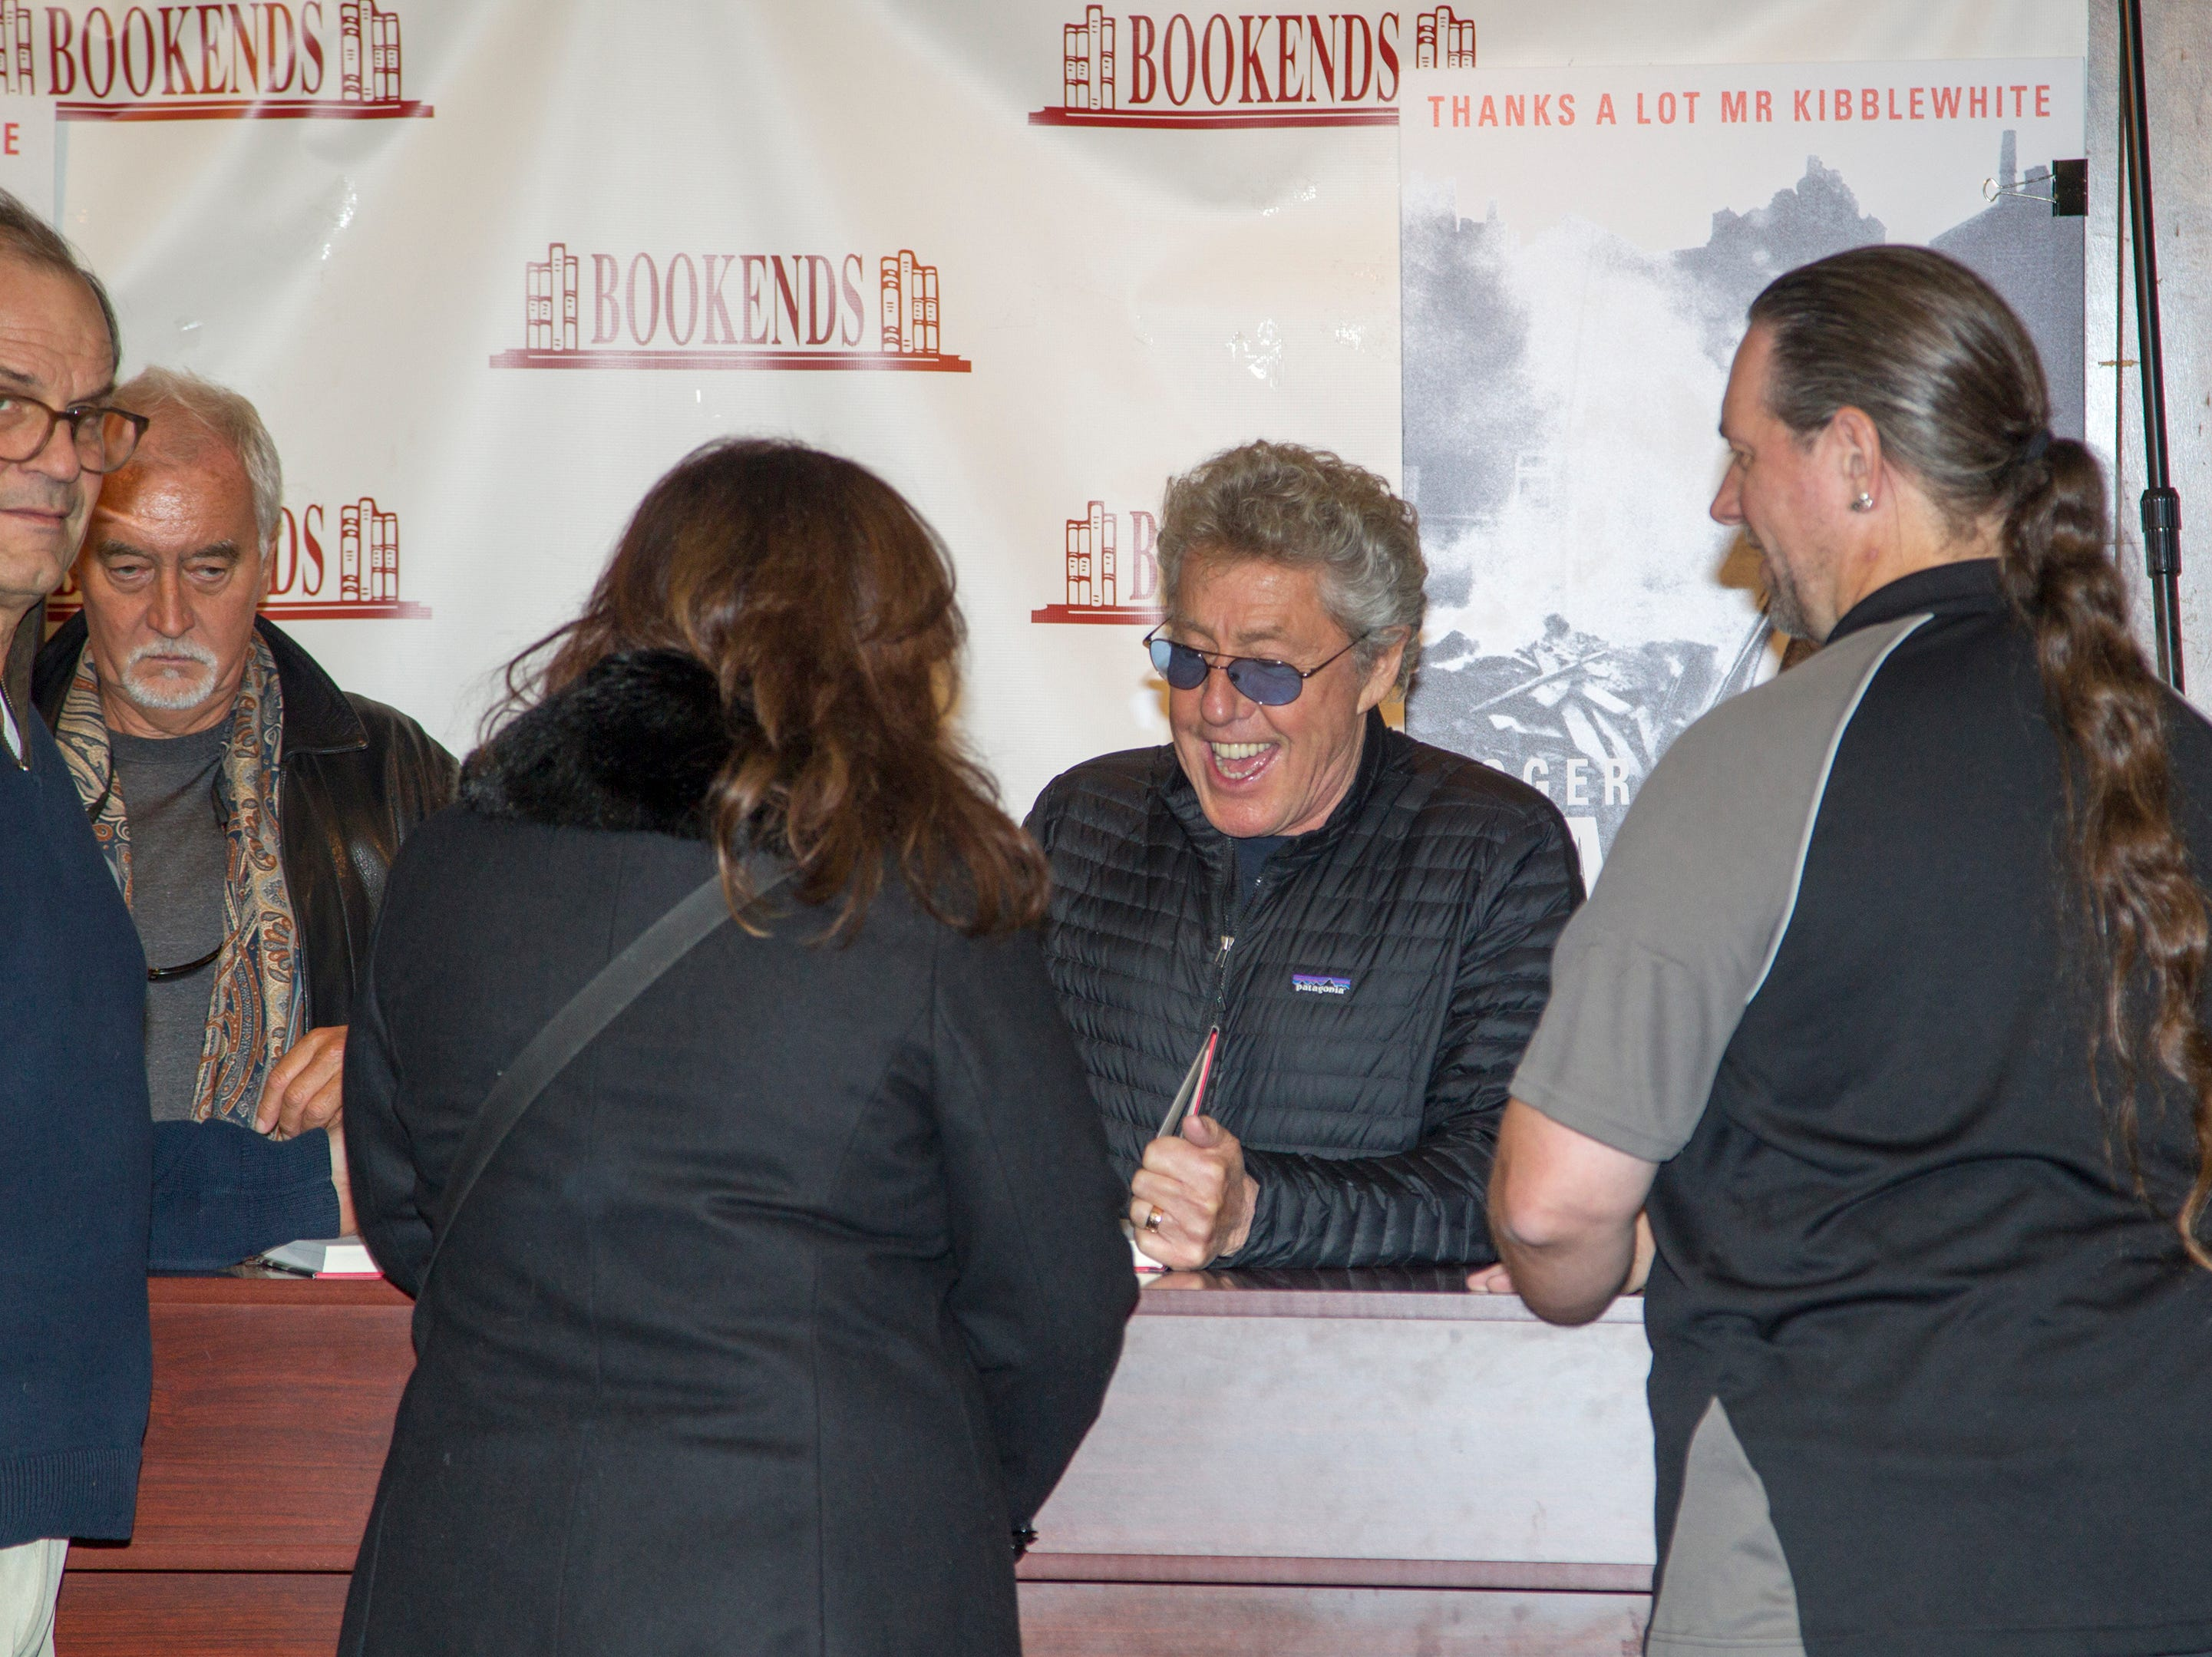 Roger Daltrey, lead singer of The Who, stopped off at Bookends recently to sign copies of his new memoir. There was quite a turnout to see the venerable rock legend in person.